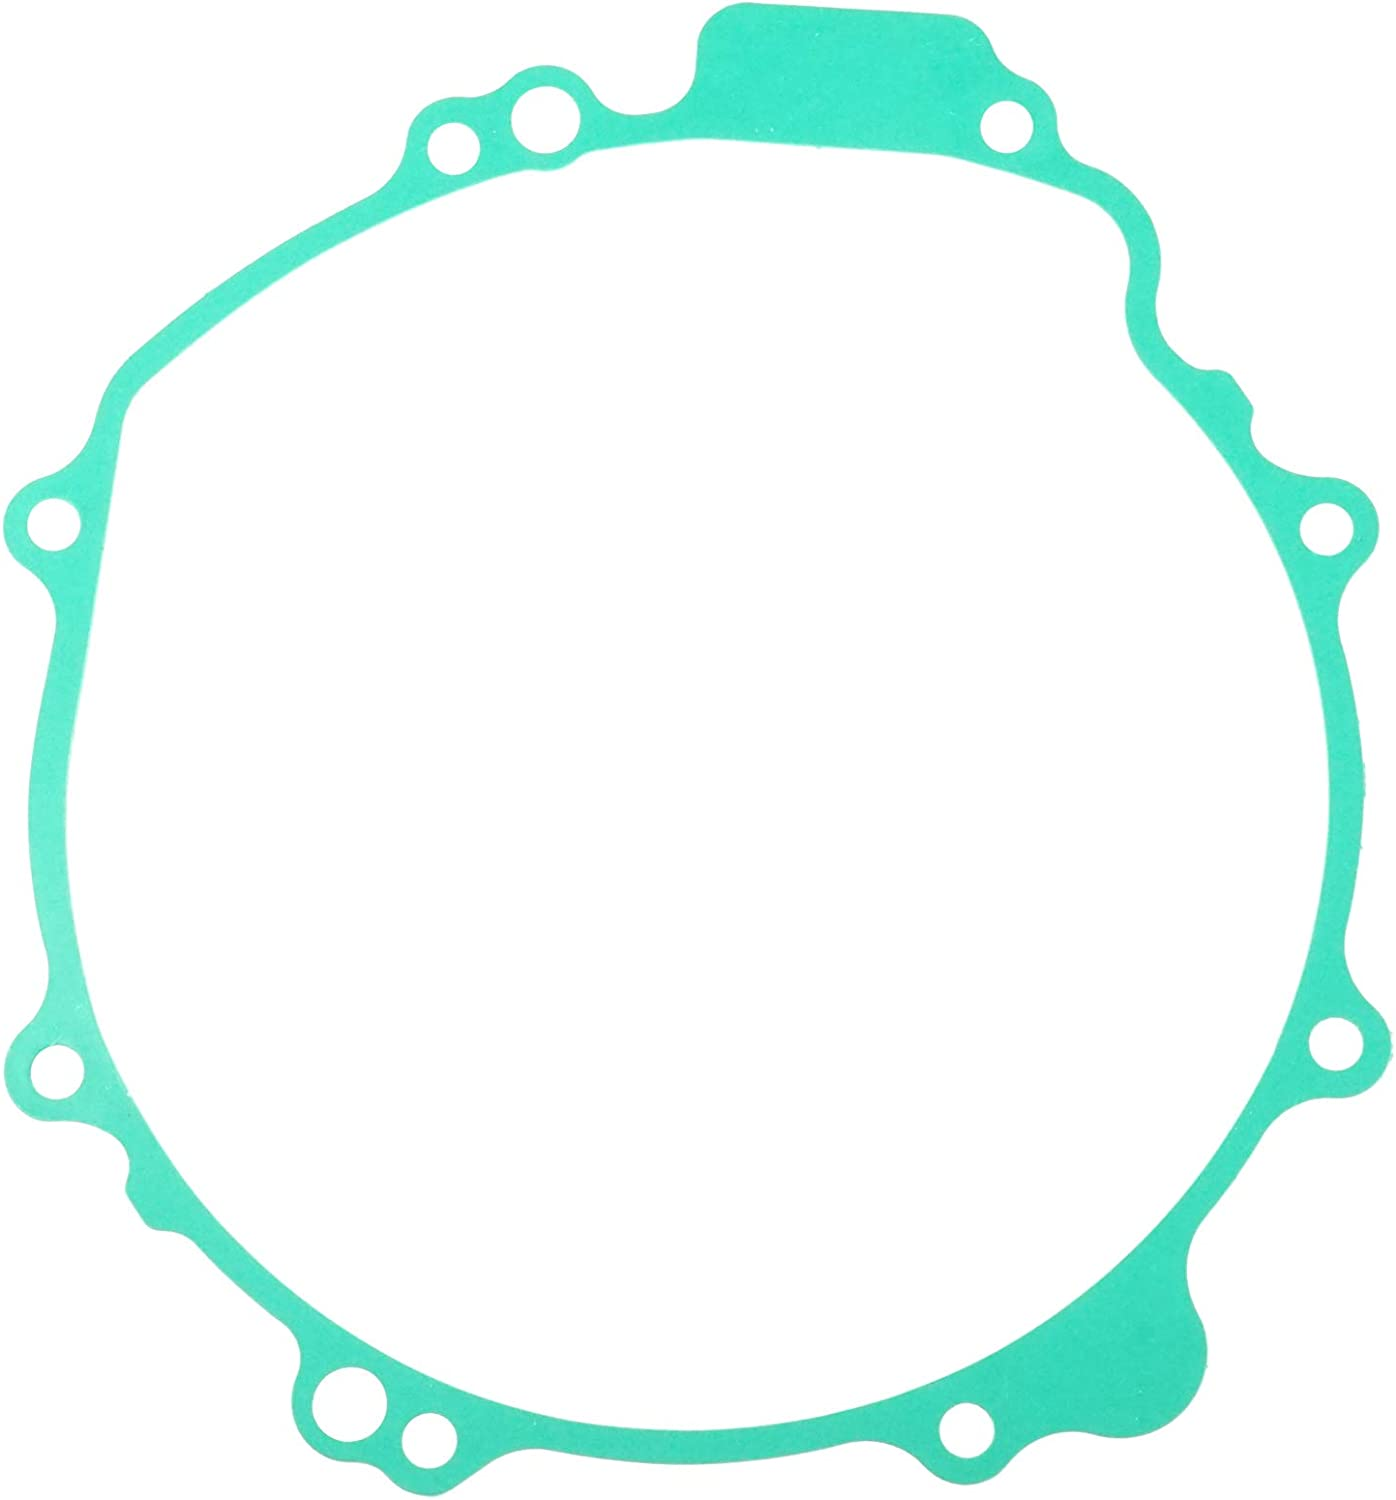 Caltric Stator Cover Gasket Compatible with Honda 11636-Mcw-010 11636-Mcw-000